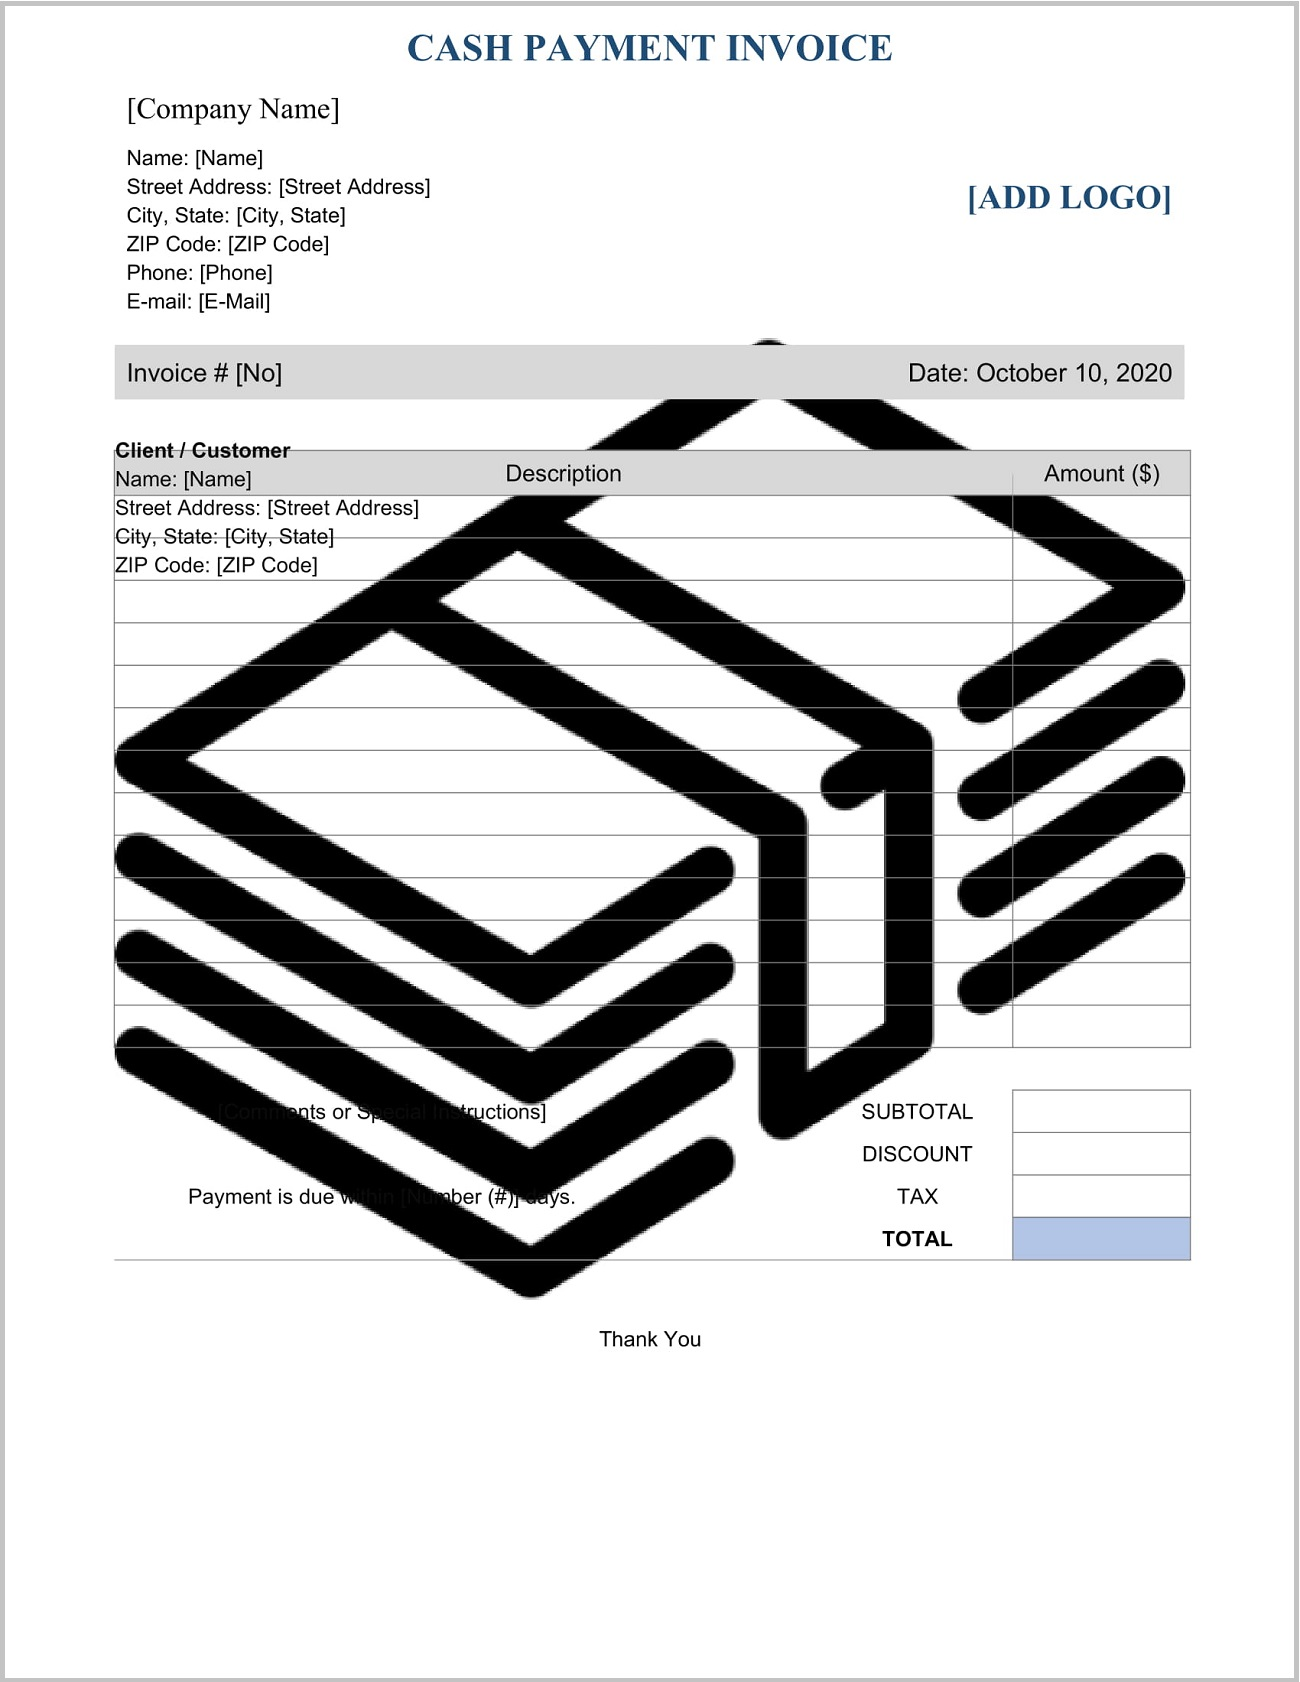 Cash Payment Invoice Template Word